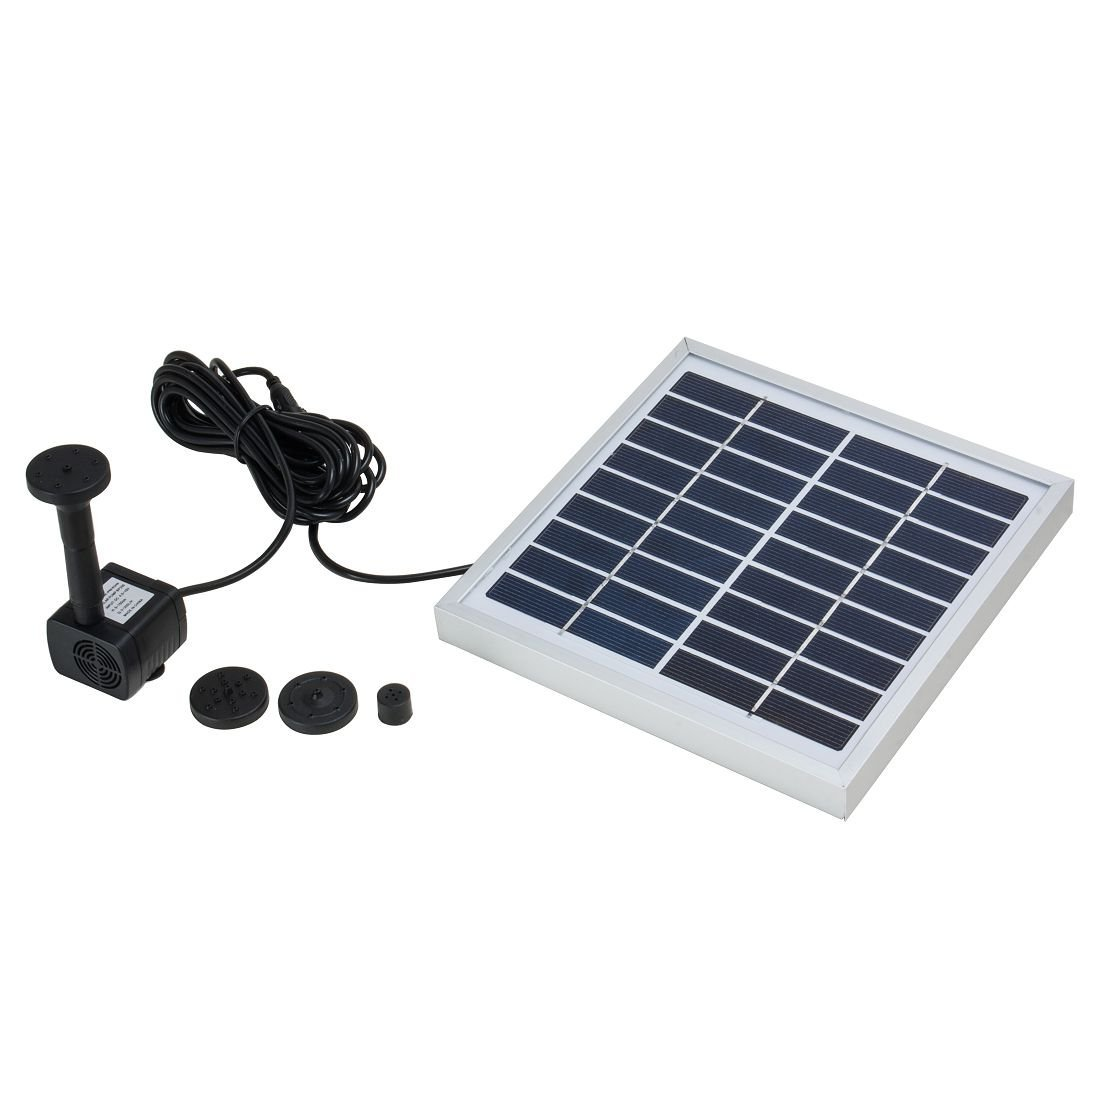 Cheap Solar Pond Waterfall, find Solar Pond Waterfall deals